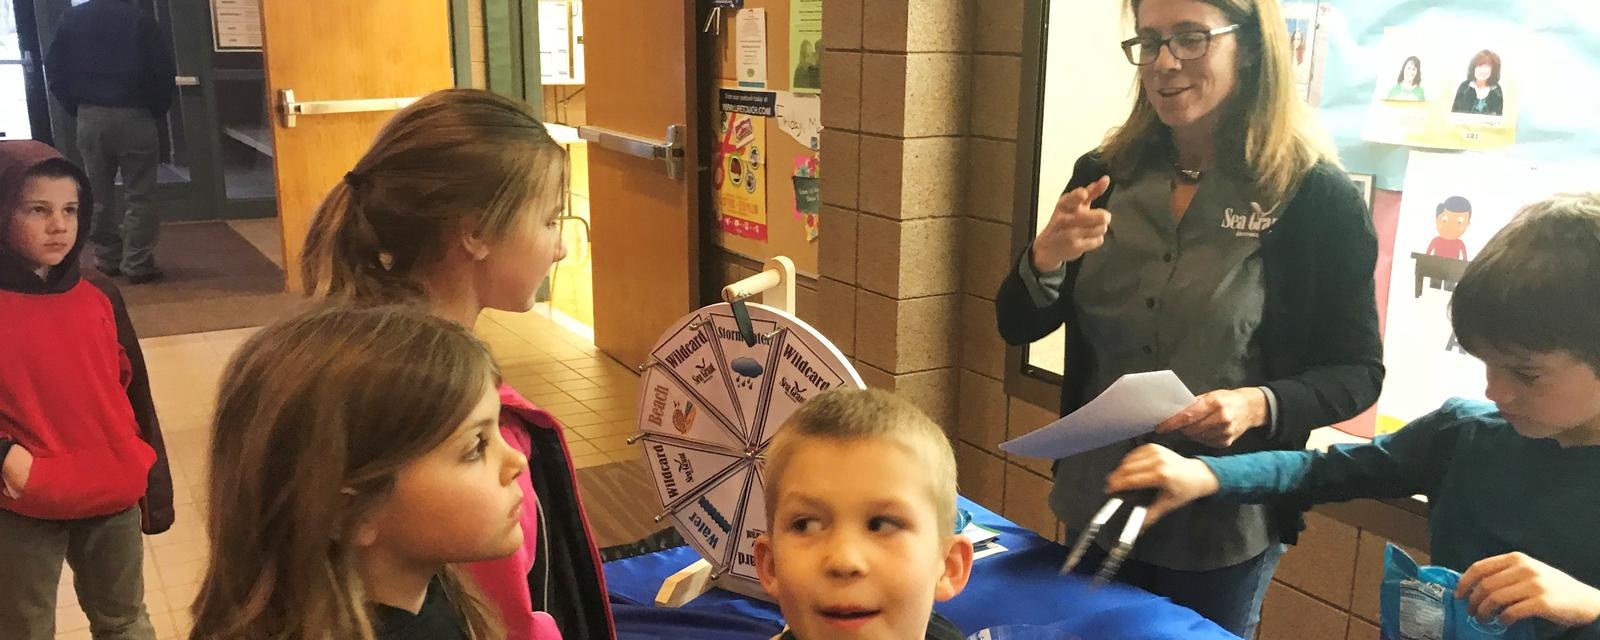 Students spinning wheel at booth